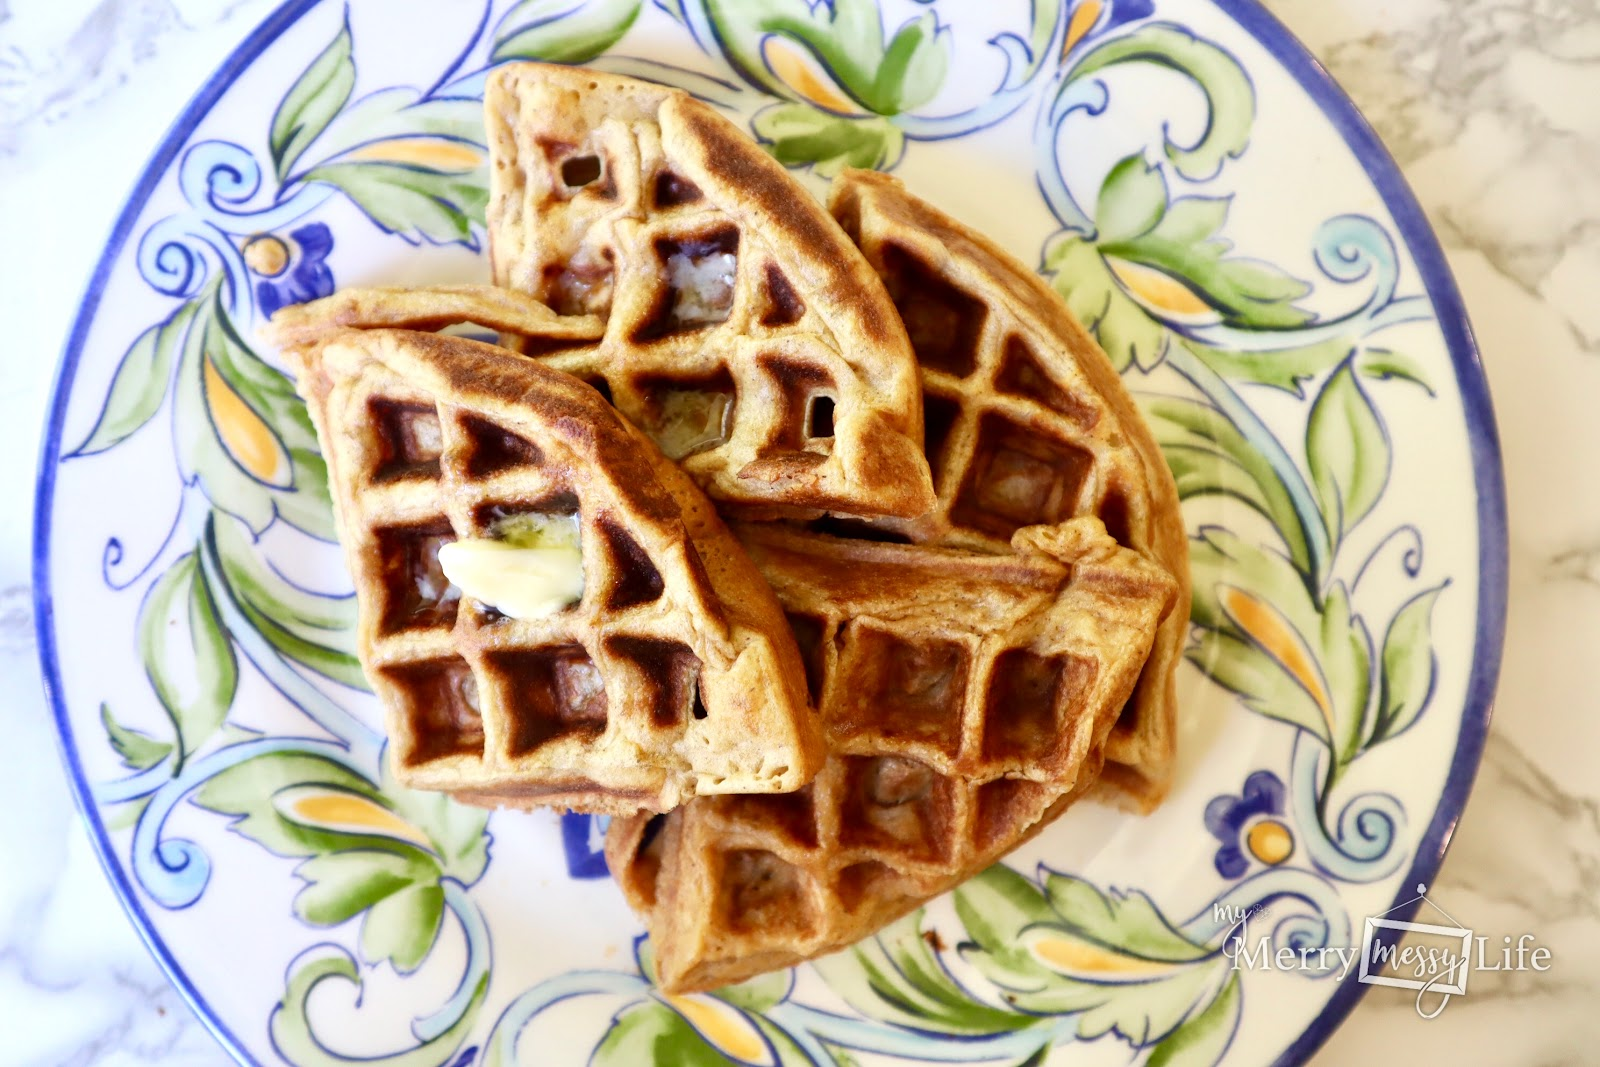 Buttery Einkorn flour, flax seed and healthy waffles!